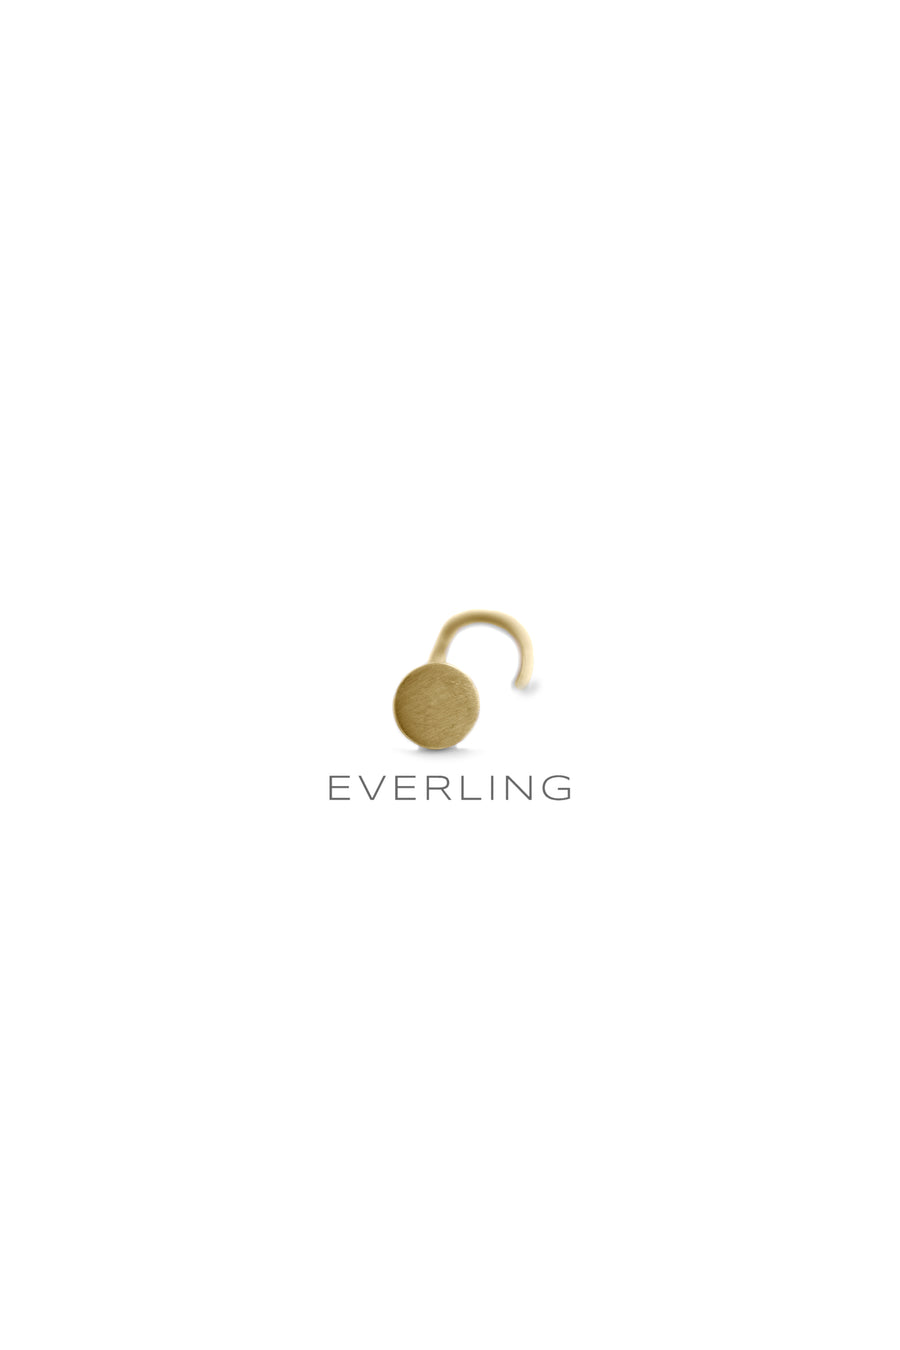 Recycled 14k Yellow Gold disk nose stud. www.EverlingJewelry.com